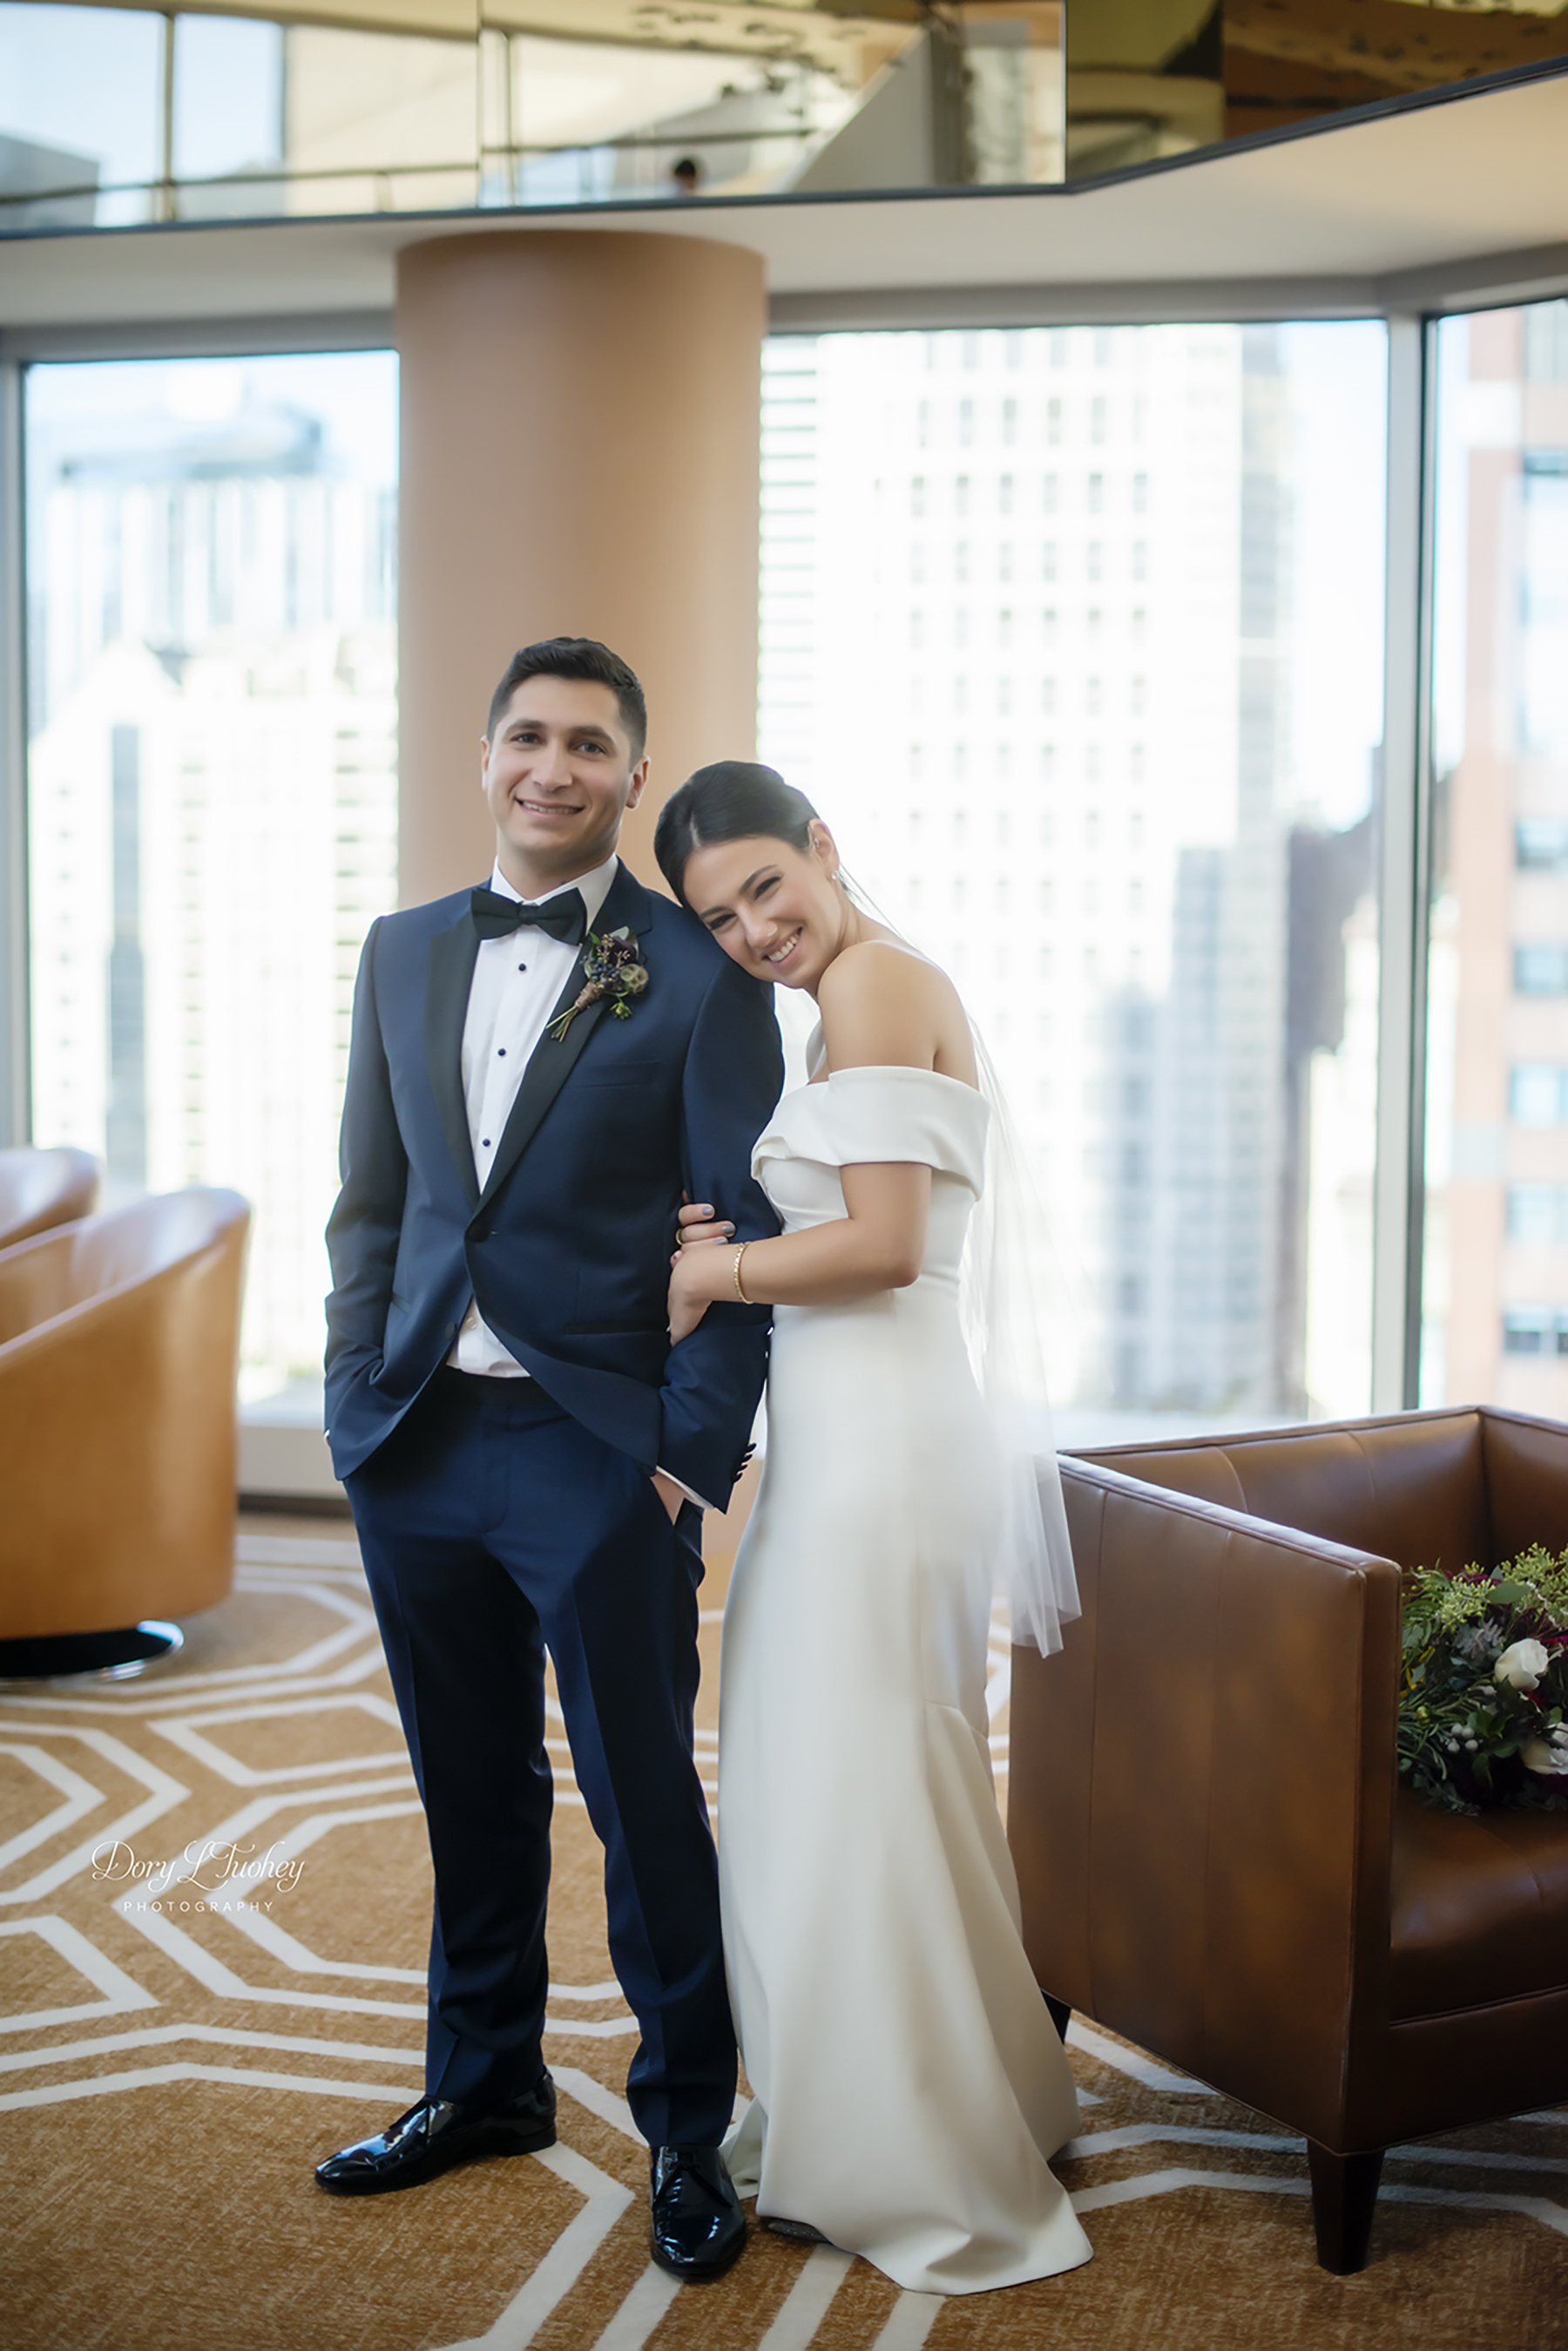 Conrad_hotel_chicago_bride_wuite_wedding_BHLDN_orange_sofa_gorgeous_natural_light_dory_tuohey_photographer_Navy_pier_elite_yacht_groom_01.jpg